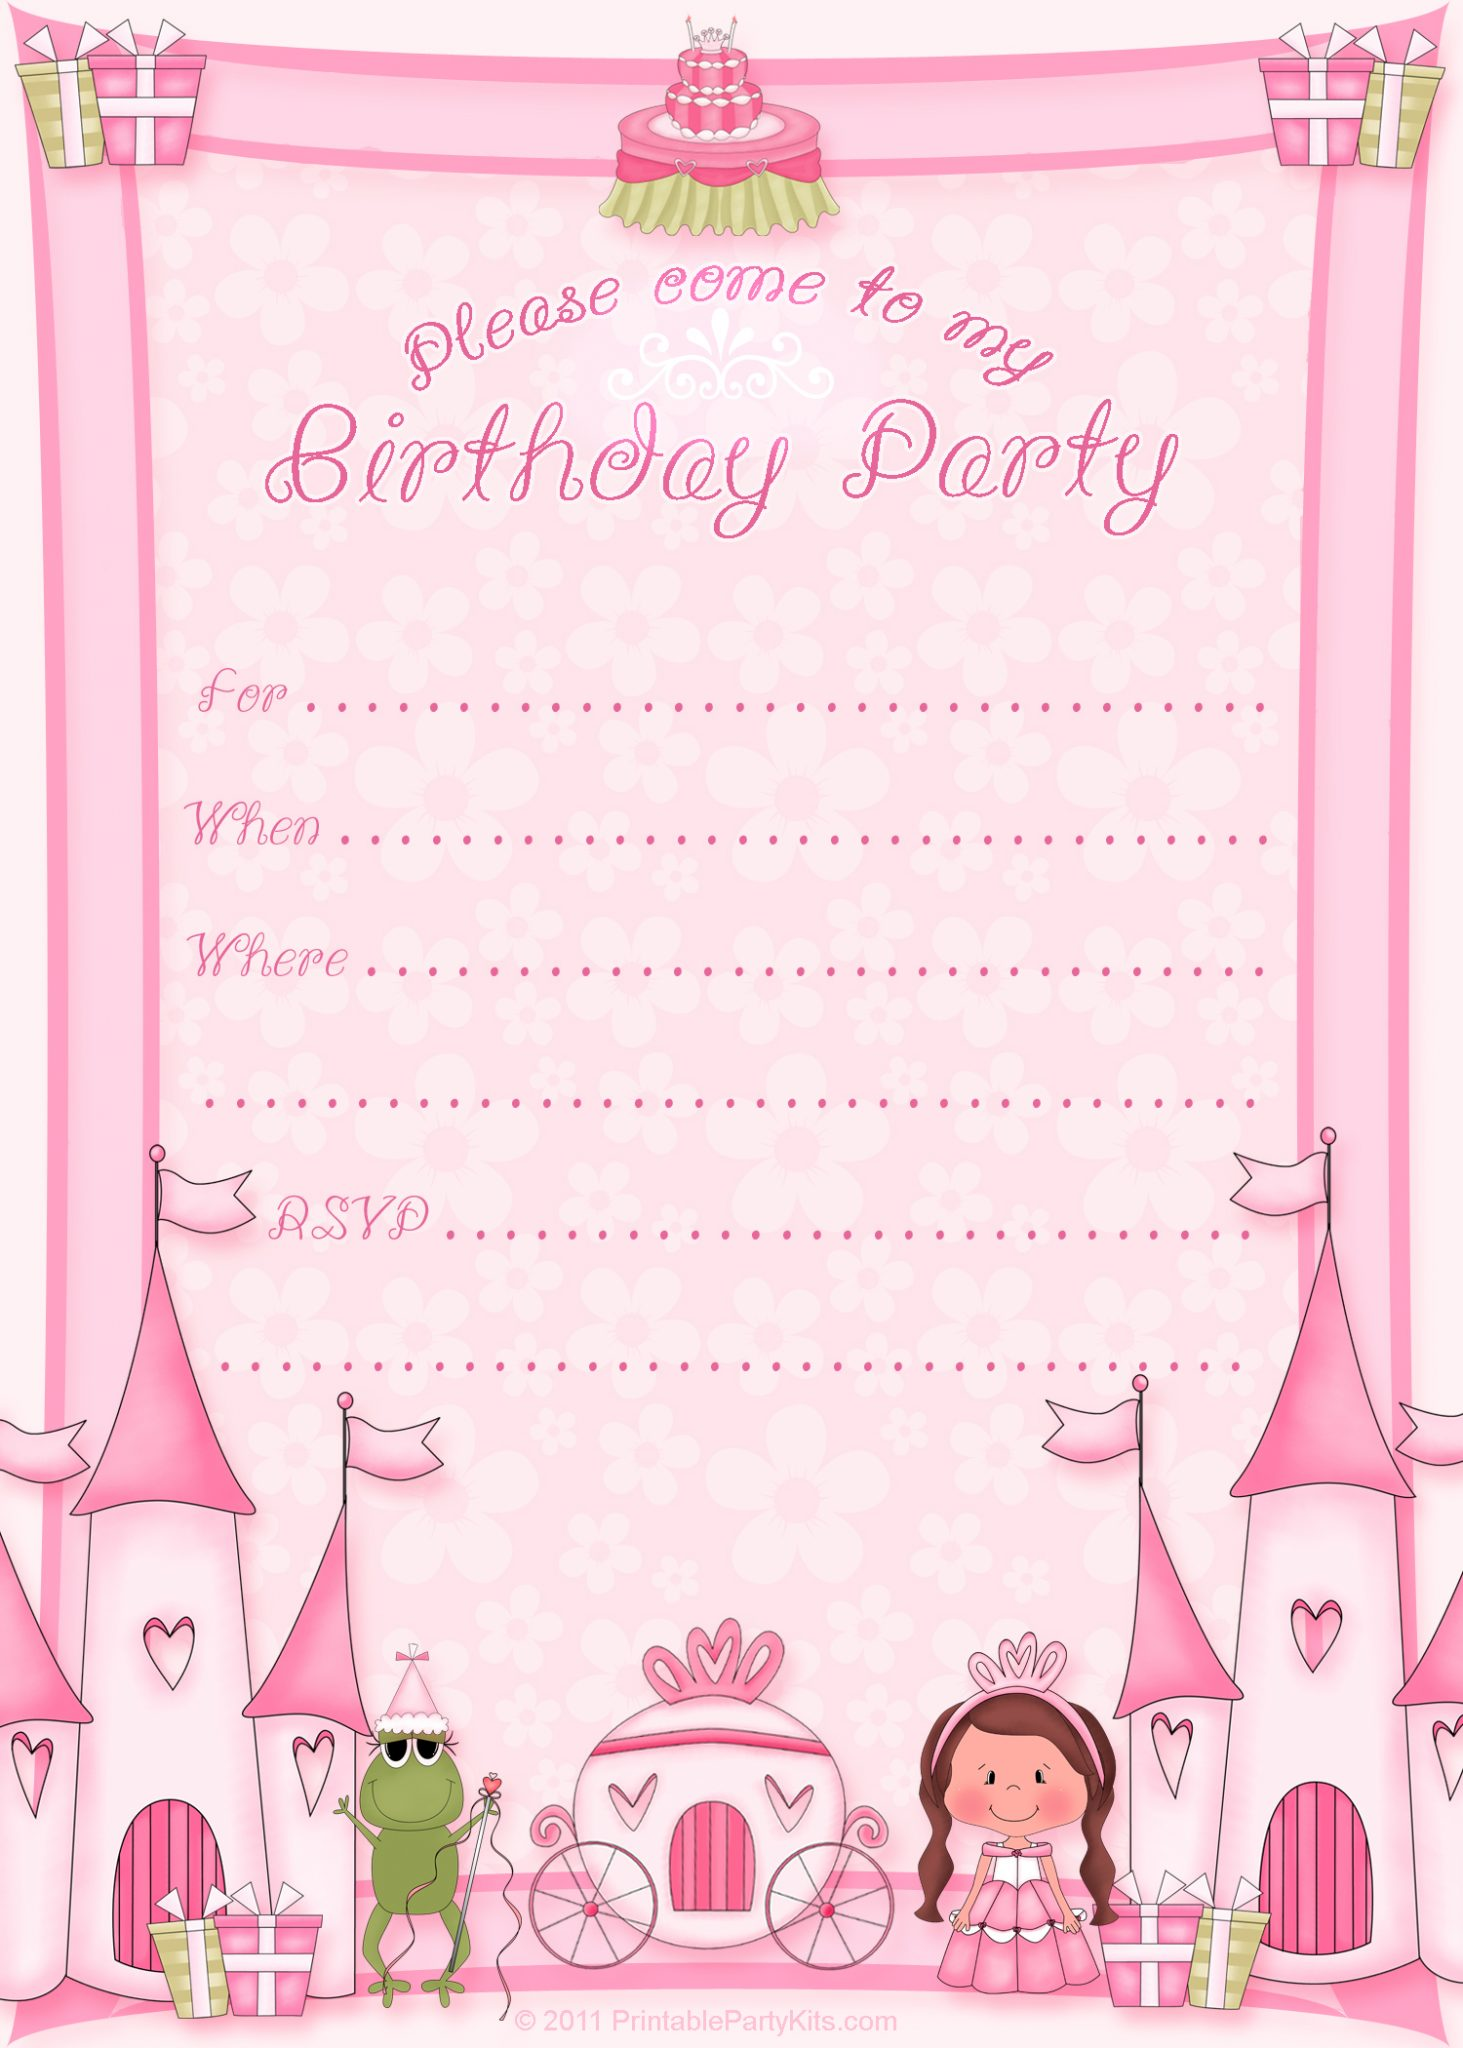 50 Free Birthday Invitation Templates You Will Love These – Free 21st Birthday Invitation Templates